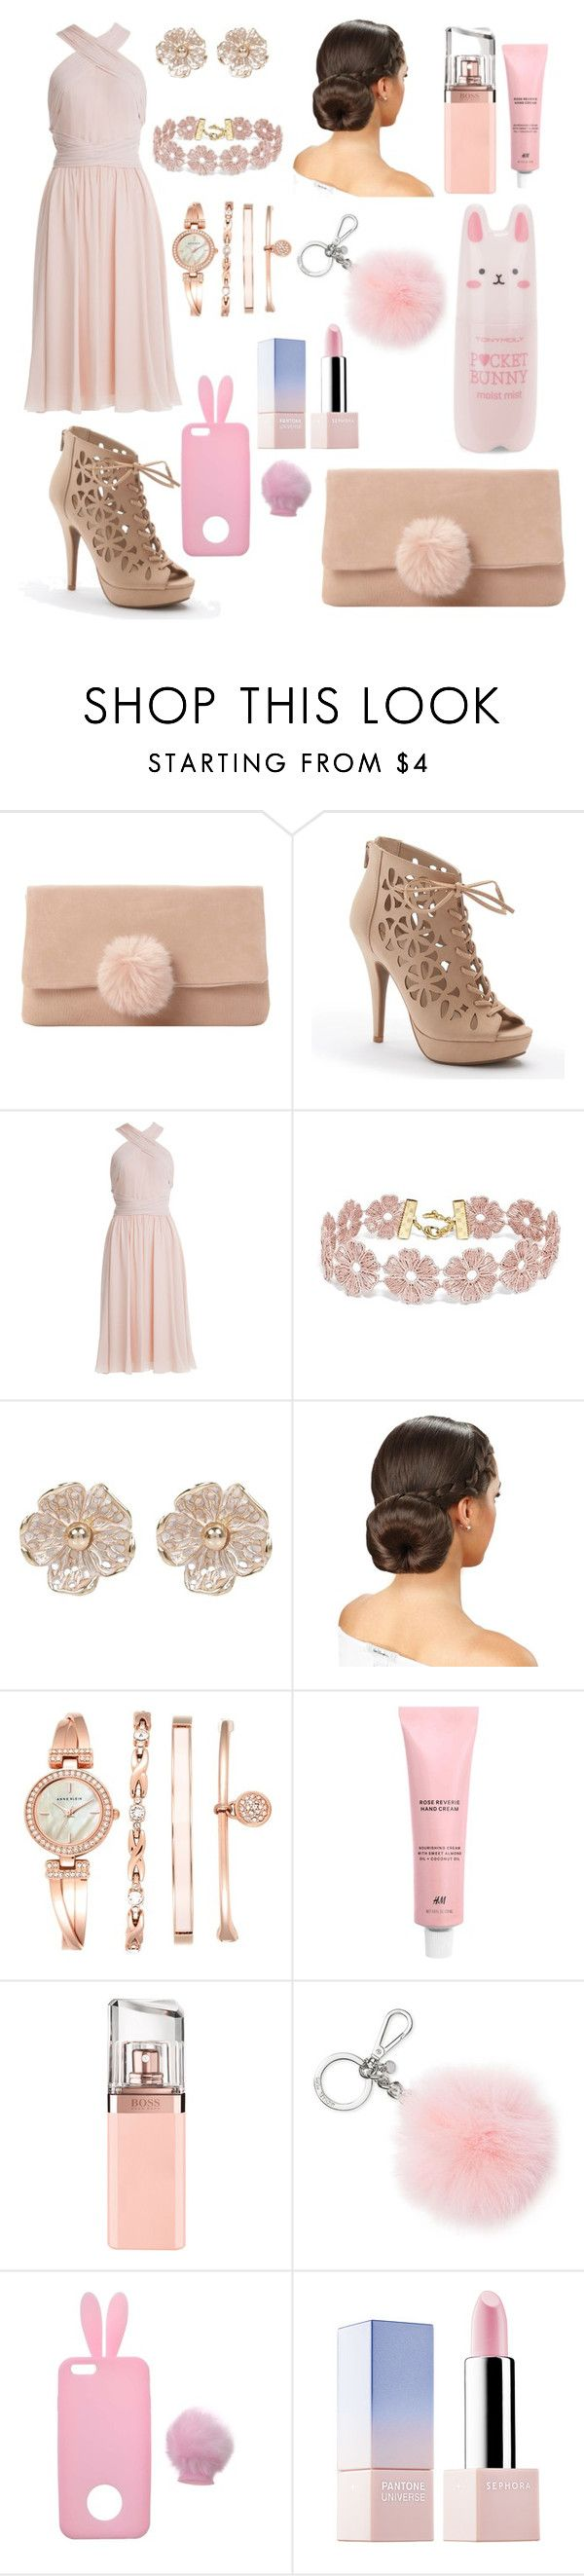 """""""Bunny Outfit"""" by amylovesptx ❤ liked on Polyvore featuring Dune, Apt. 9, Jason Wu, BaubleBar, River Island, Anne Klein, HUGO, Michael Kors, Miss Selfridge and Sephora Collection"""